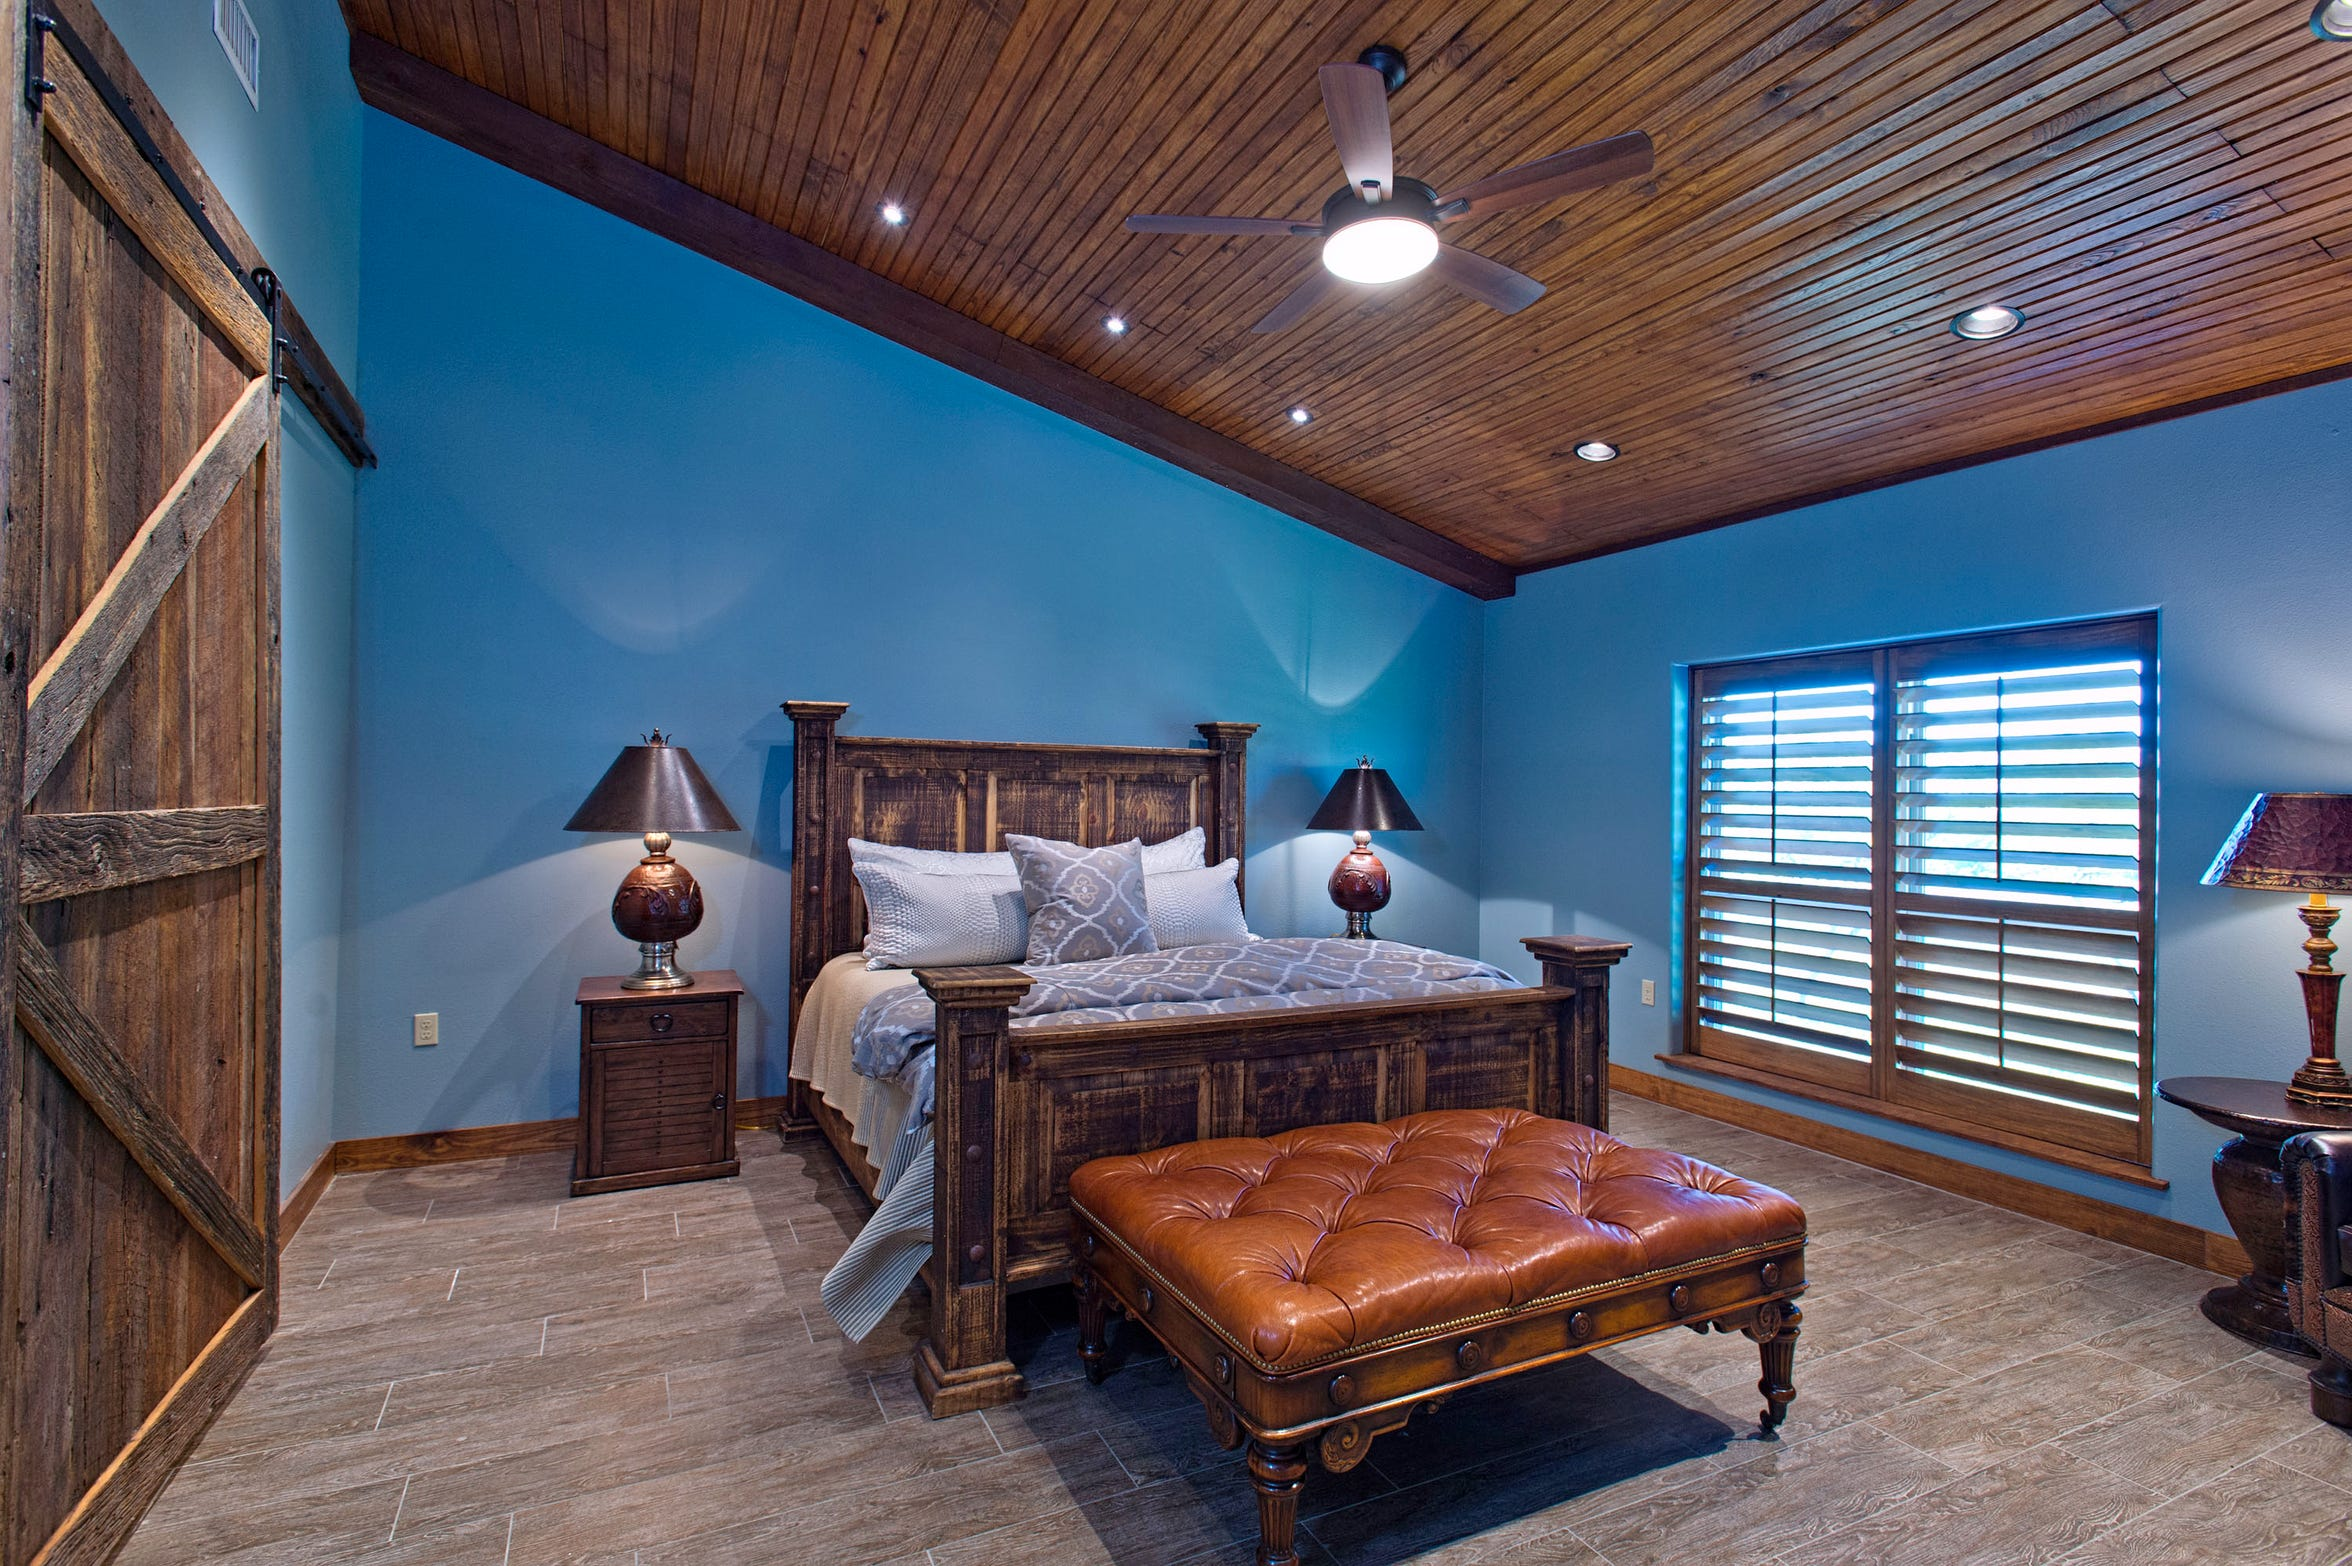 The oversized master bedroom is a restful spot with a vaulted wood ceiling, beautiful blue walls, plantain shuttered windows  and wood look tile flooring.